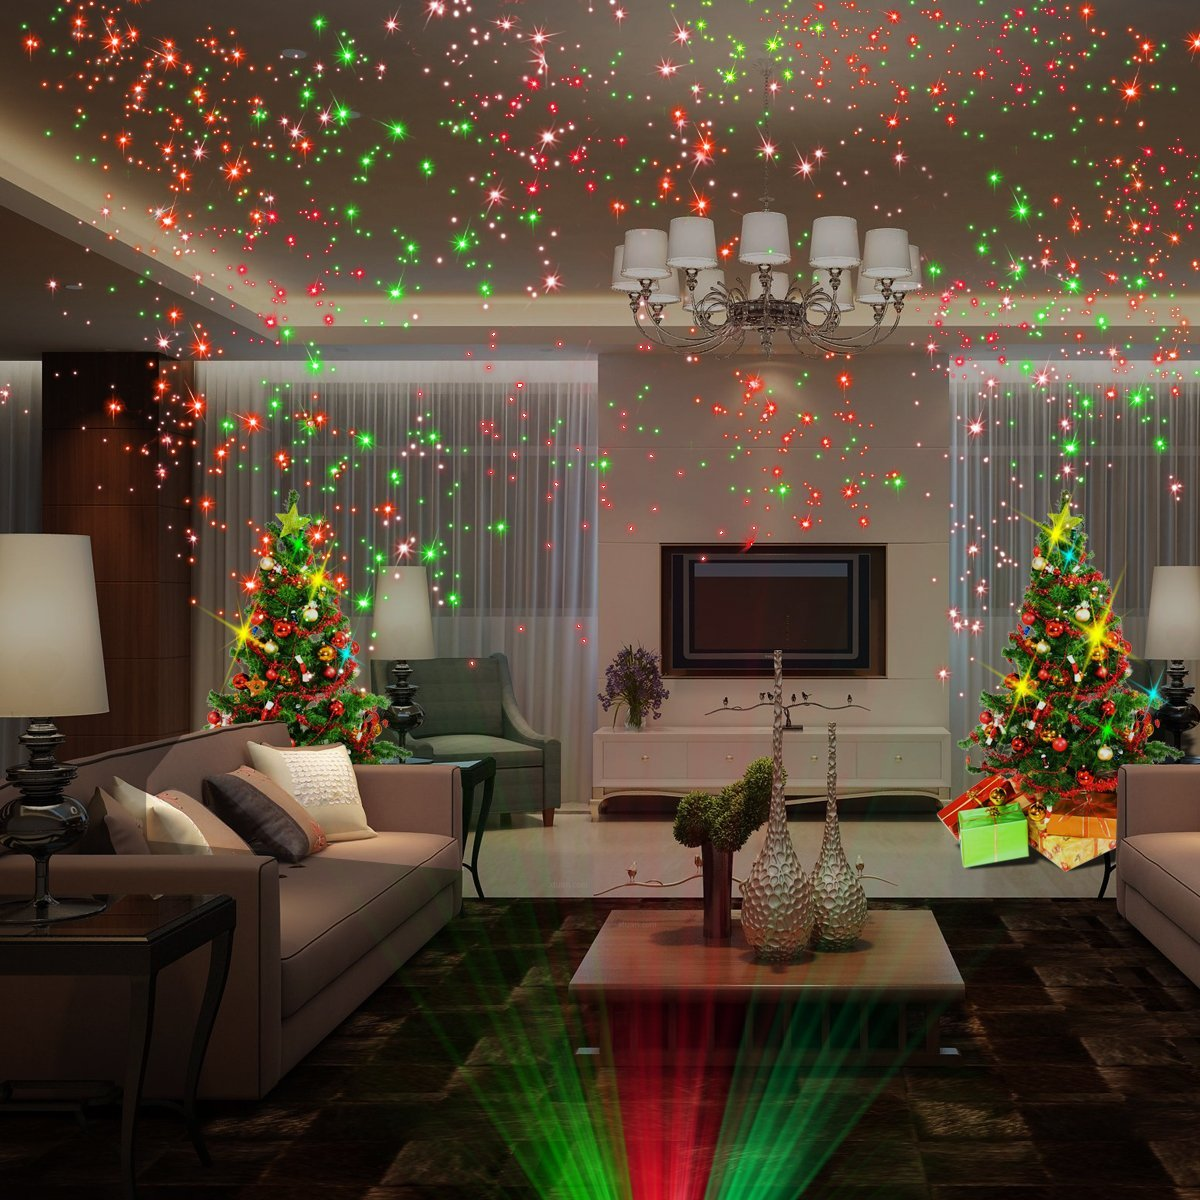 christmas lighting ideas indoor exquisite indoor christmas light ideas 0 lights picture projector window . QSNBFQG